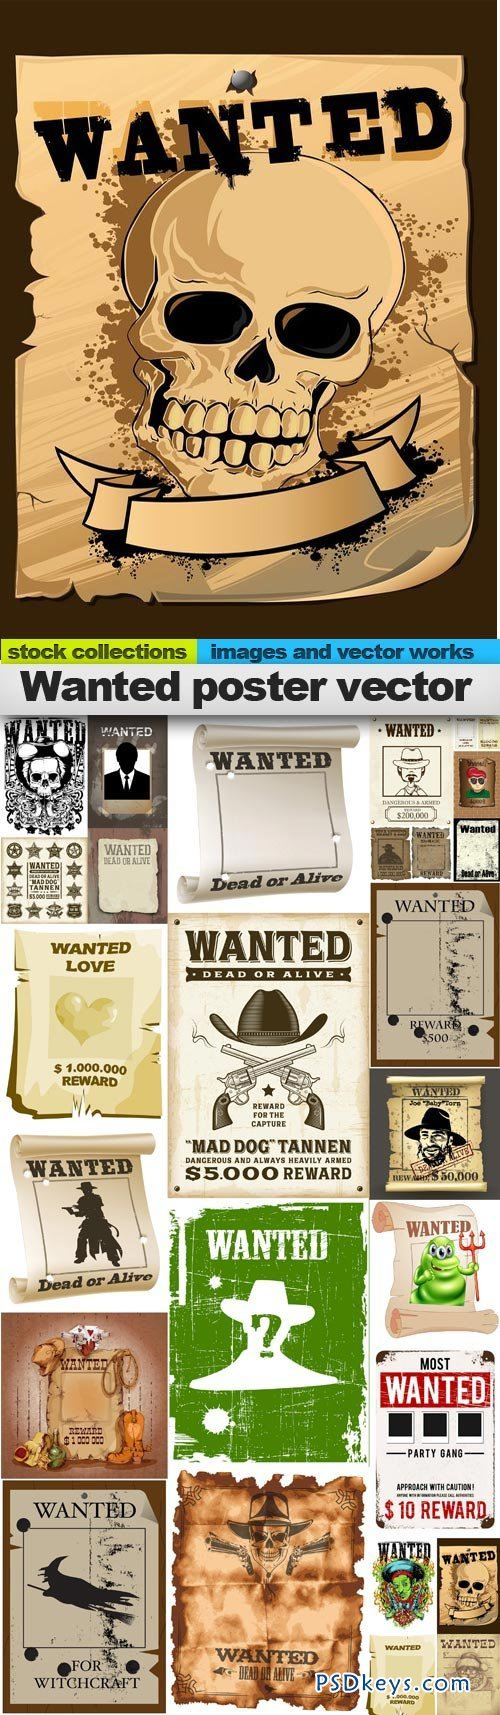 Wanted poster vector 25xEPS